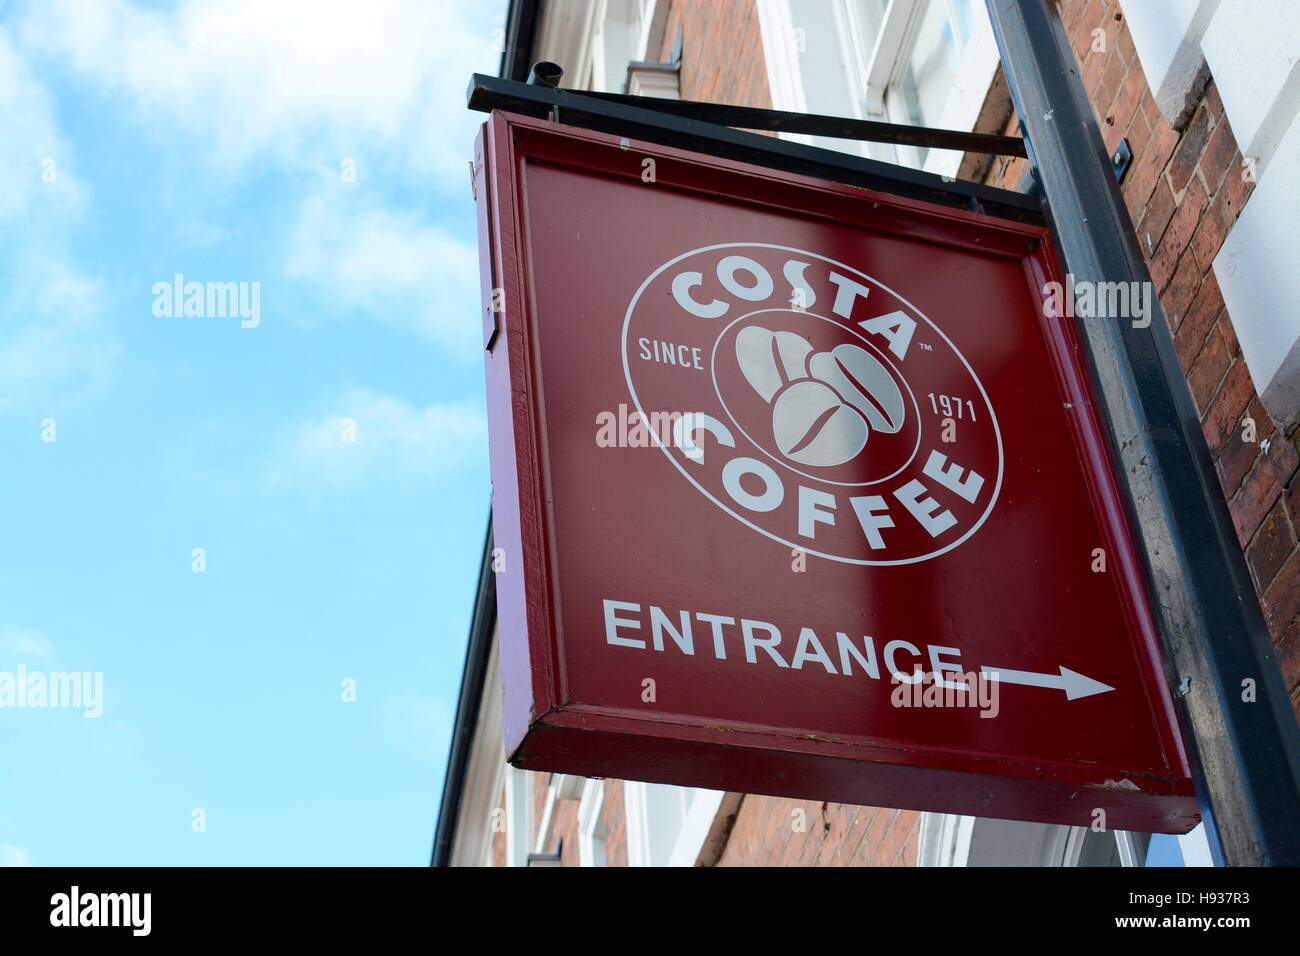 Costa Coffee Sign, Nantwich - Stock Image